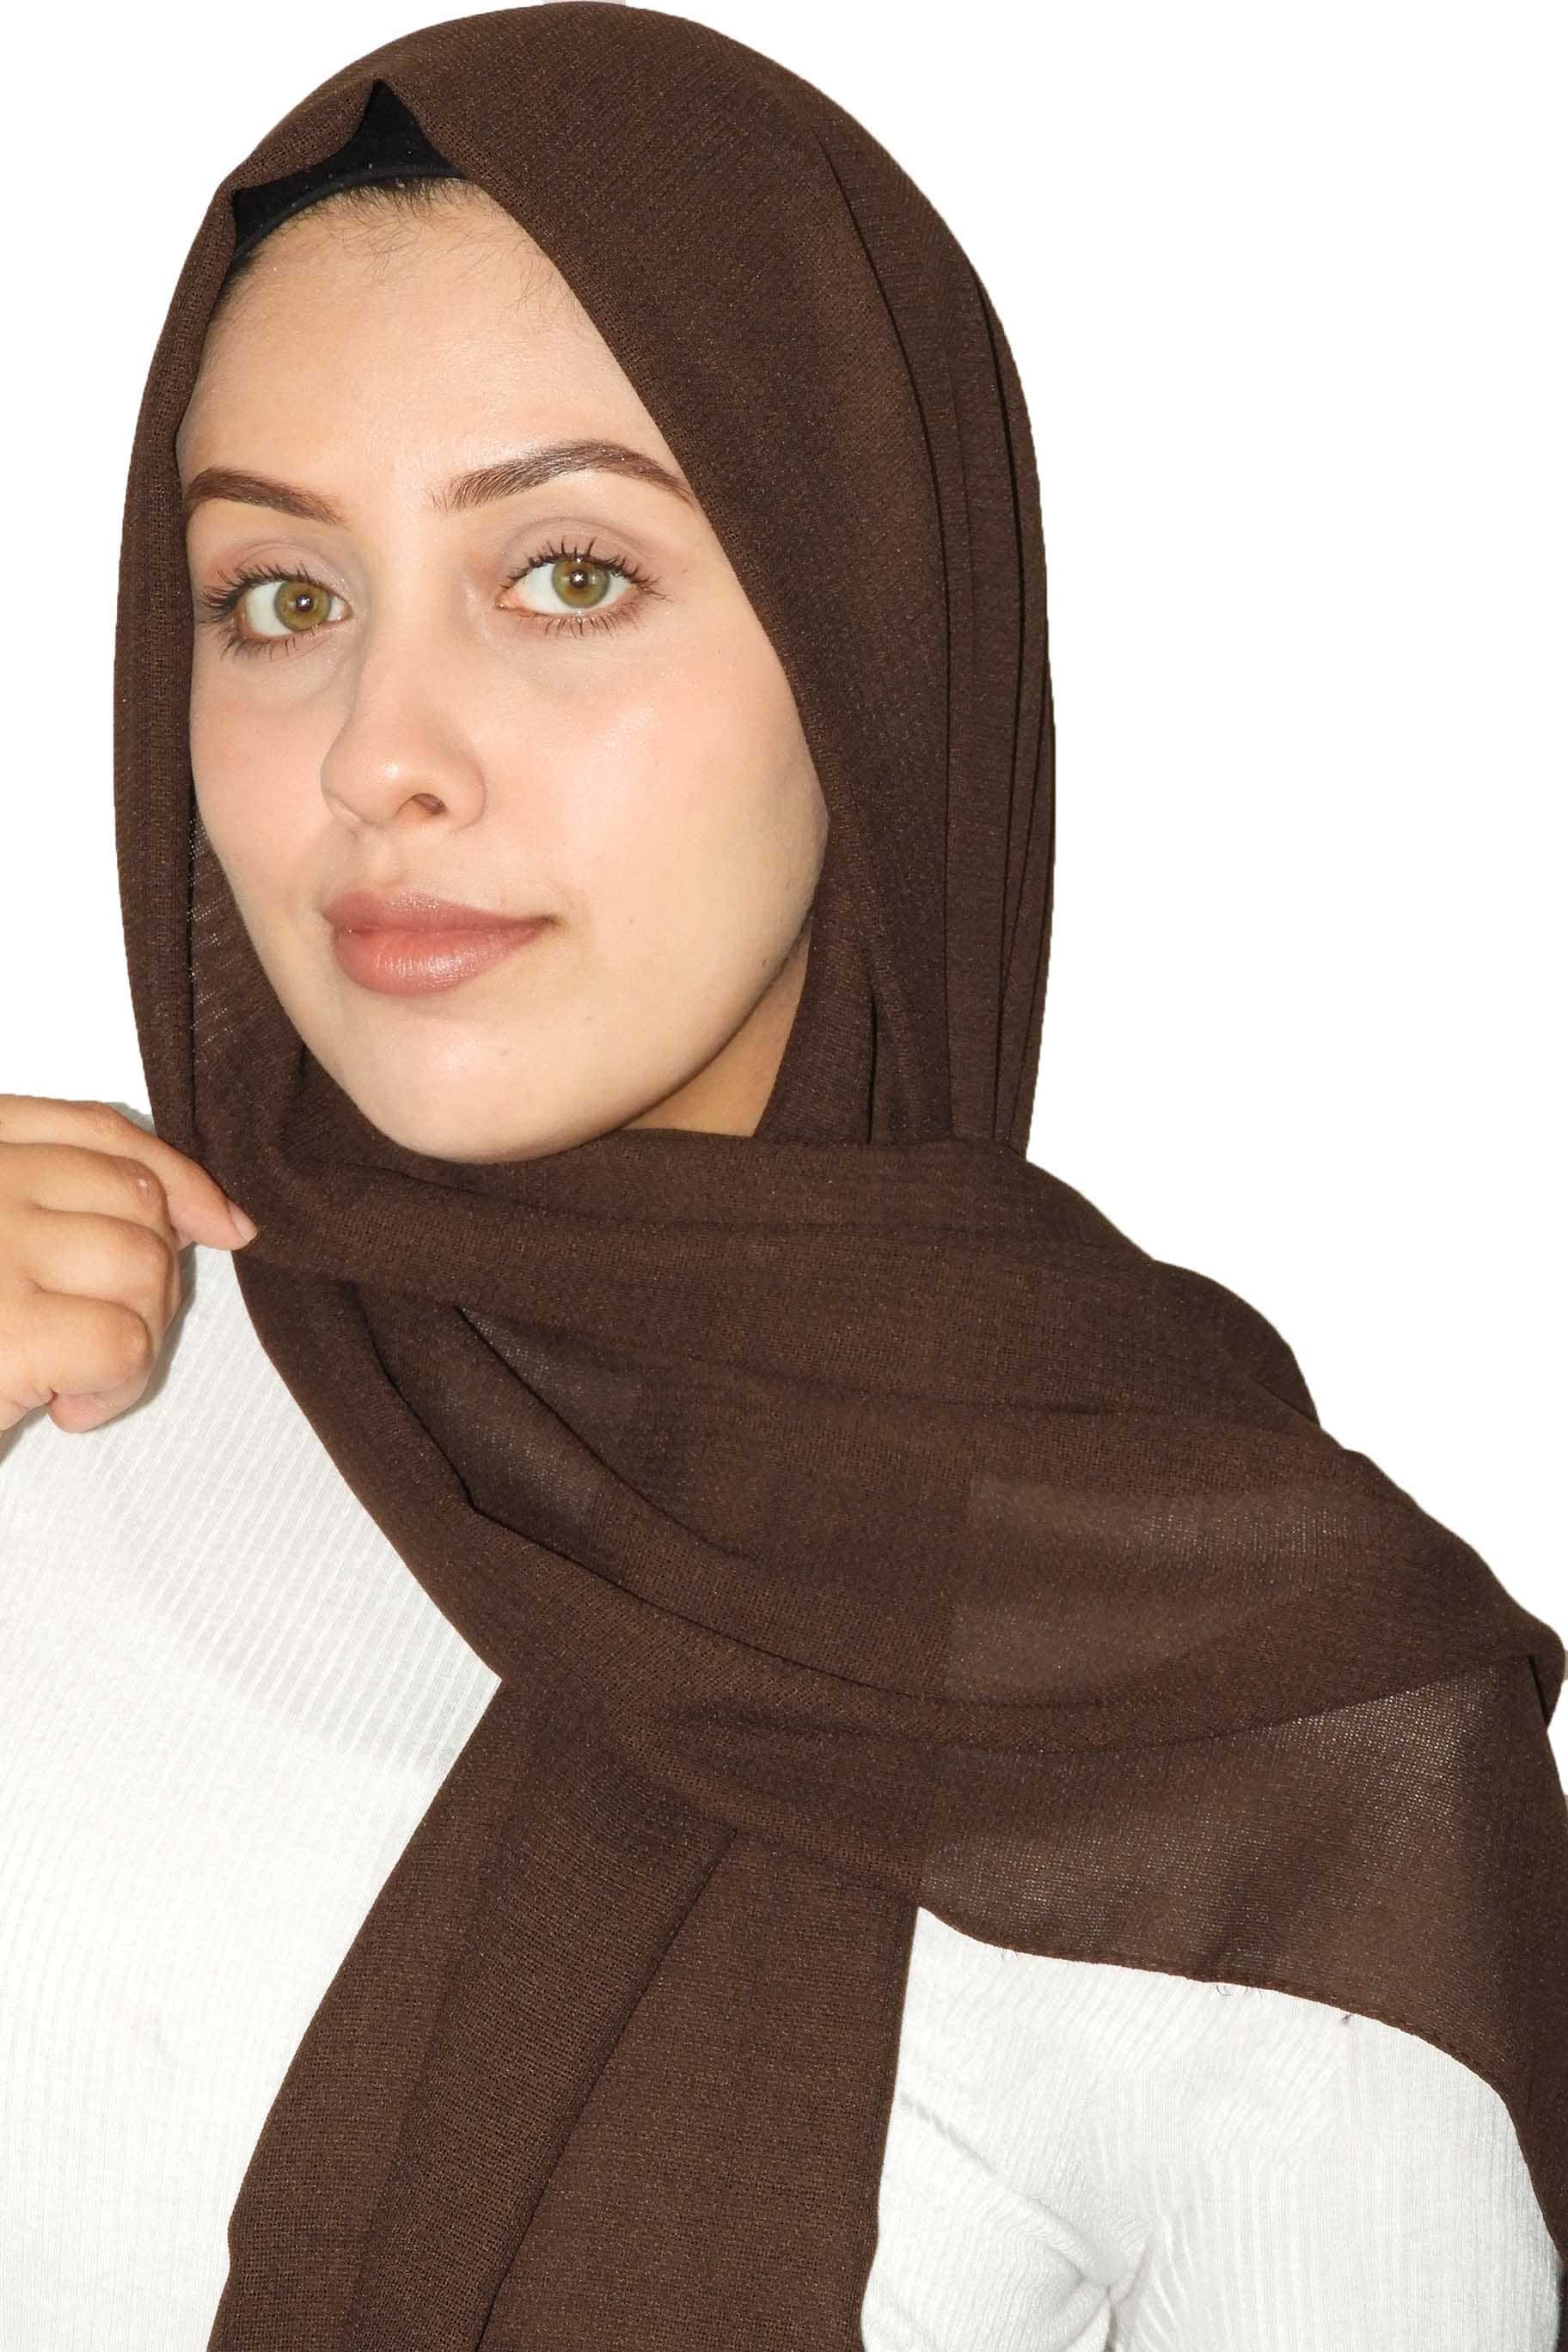 Bark Brown Jute Cotton - Jute-Cotton Hijab - The Modest Look